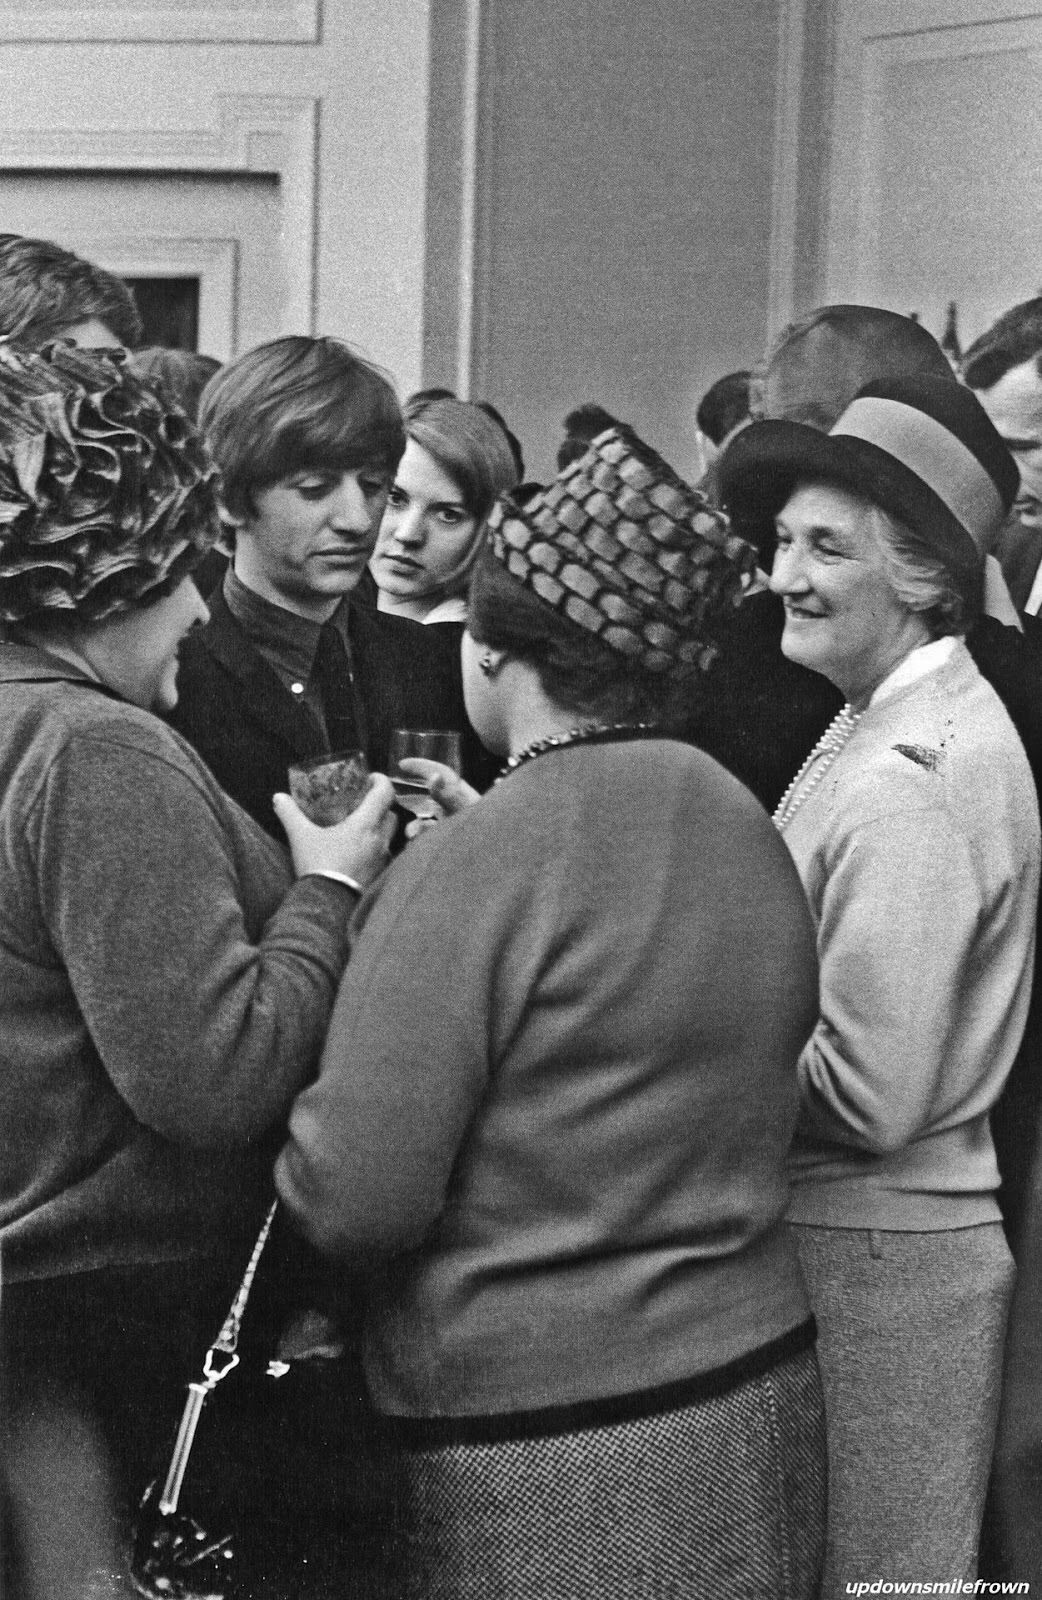 Ringo—look at him surrounded by all these women. :D